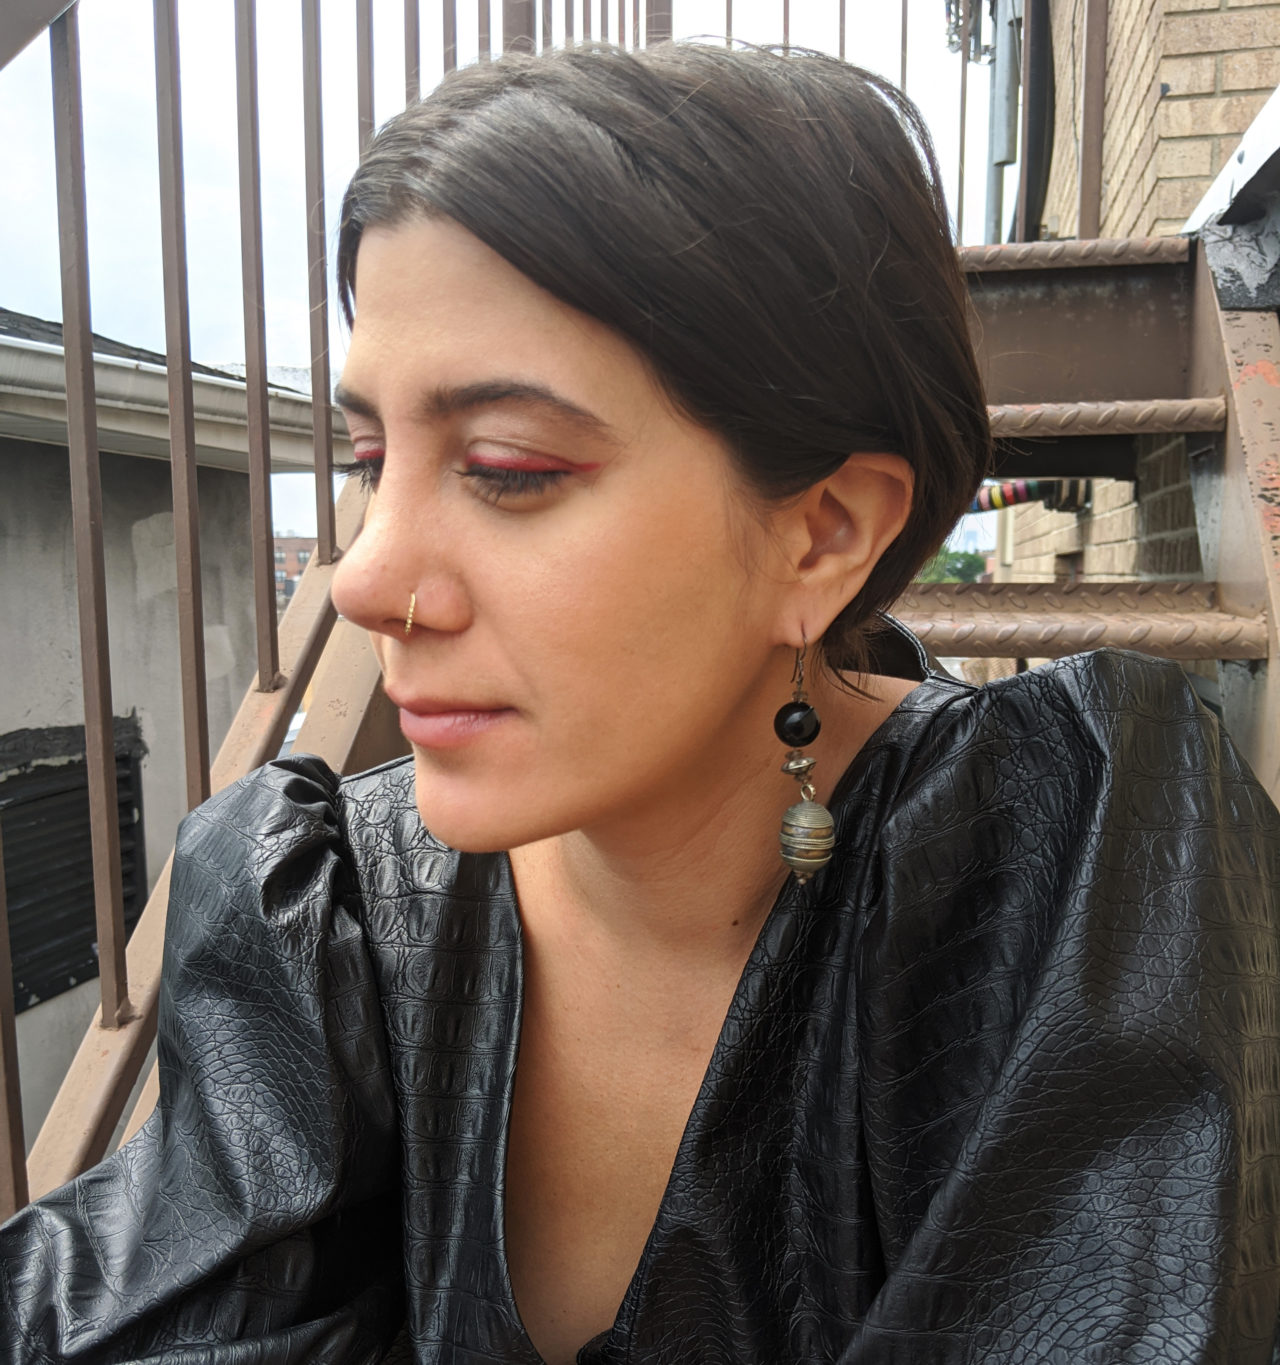 A profile image of a woman wearing black leather dress sitting on the staircase of a rooftop. She is wearing a red eyeliner and has a dark brown hair.